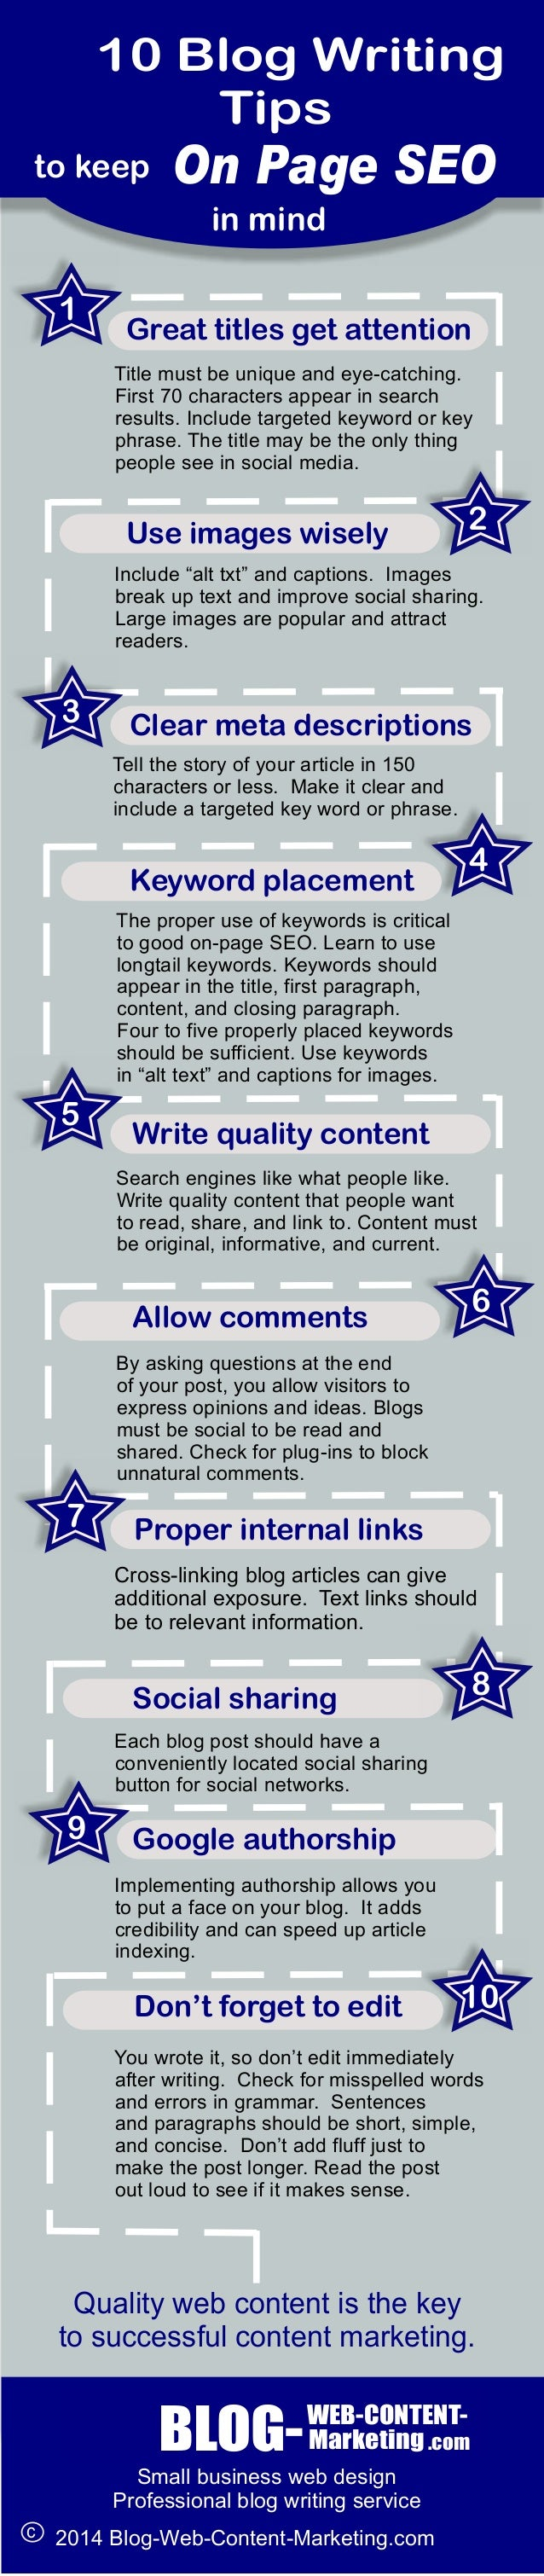 10 Blog Writing Tips To Keep On Page SEO In Mind